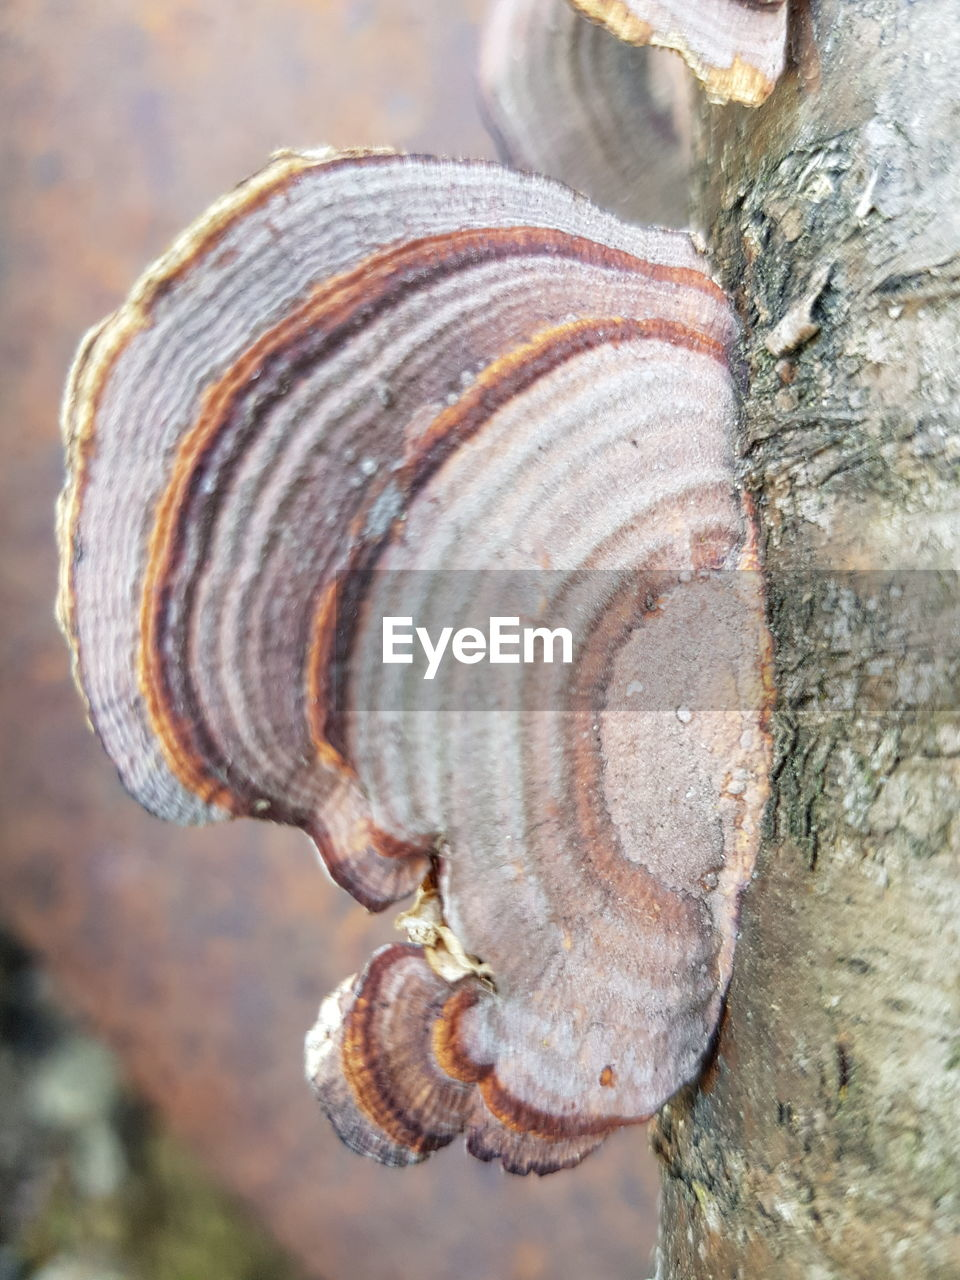 shell, close-up, animal wildlife, animal shell, tree trunk, focus on foreground, day, trunk, textured, animal, tree, natural pattern, animals in the wild, animal themes, nature, no people, pattern, outdoors, spiral, mollusk, bark